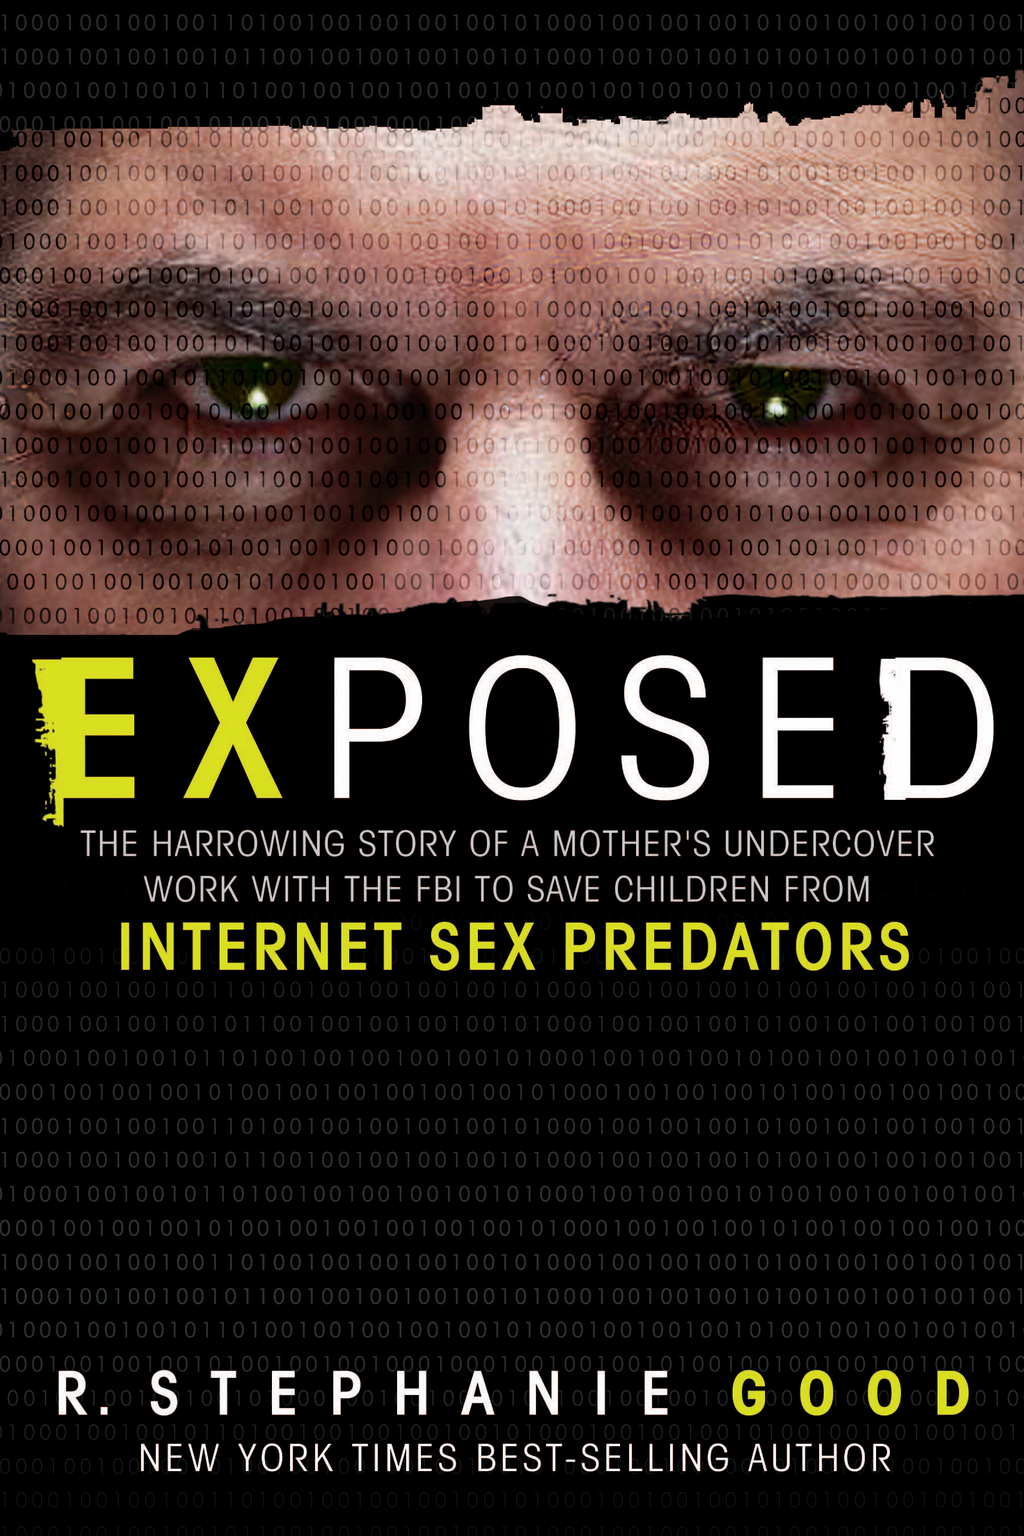 Exposed By: R. Stephanie Good